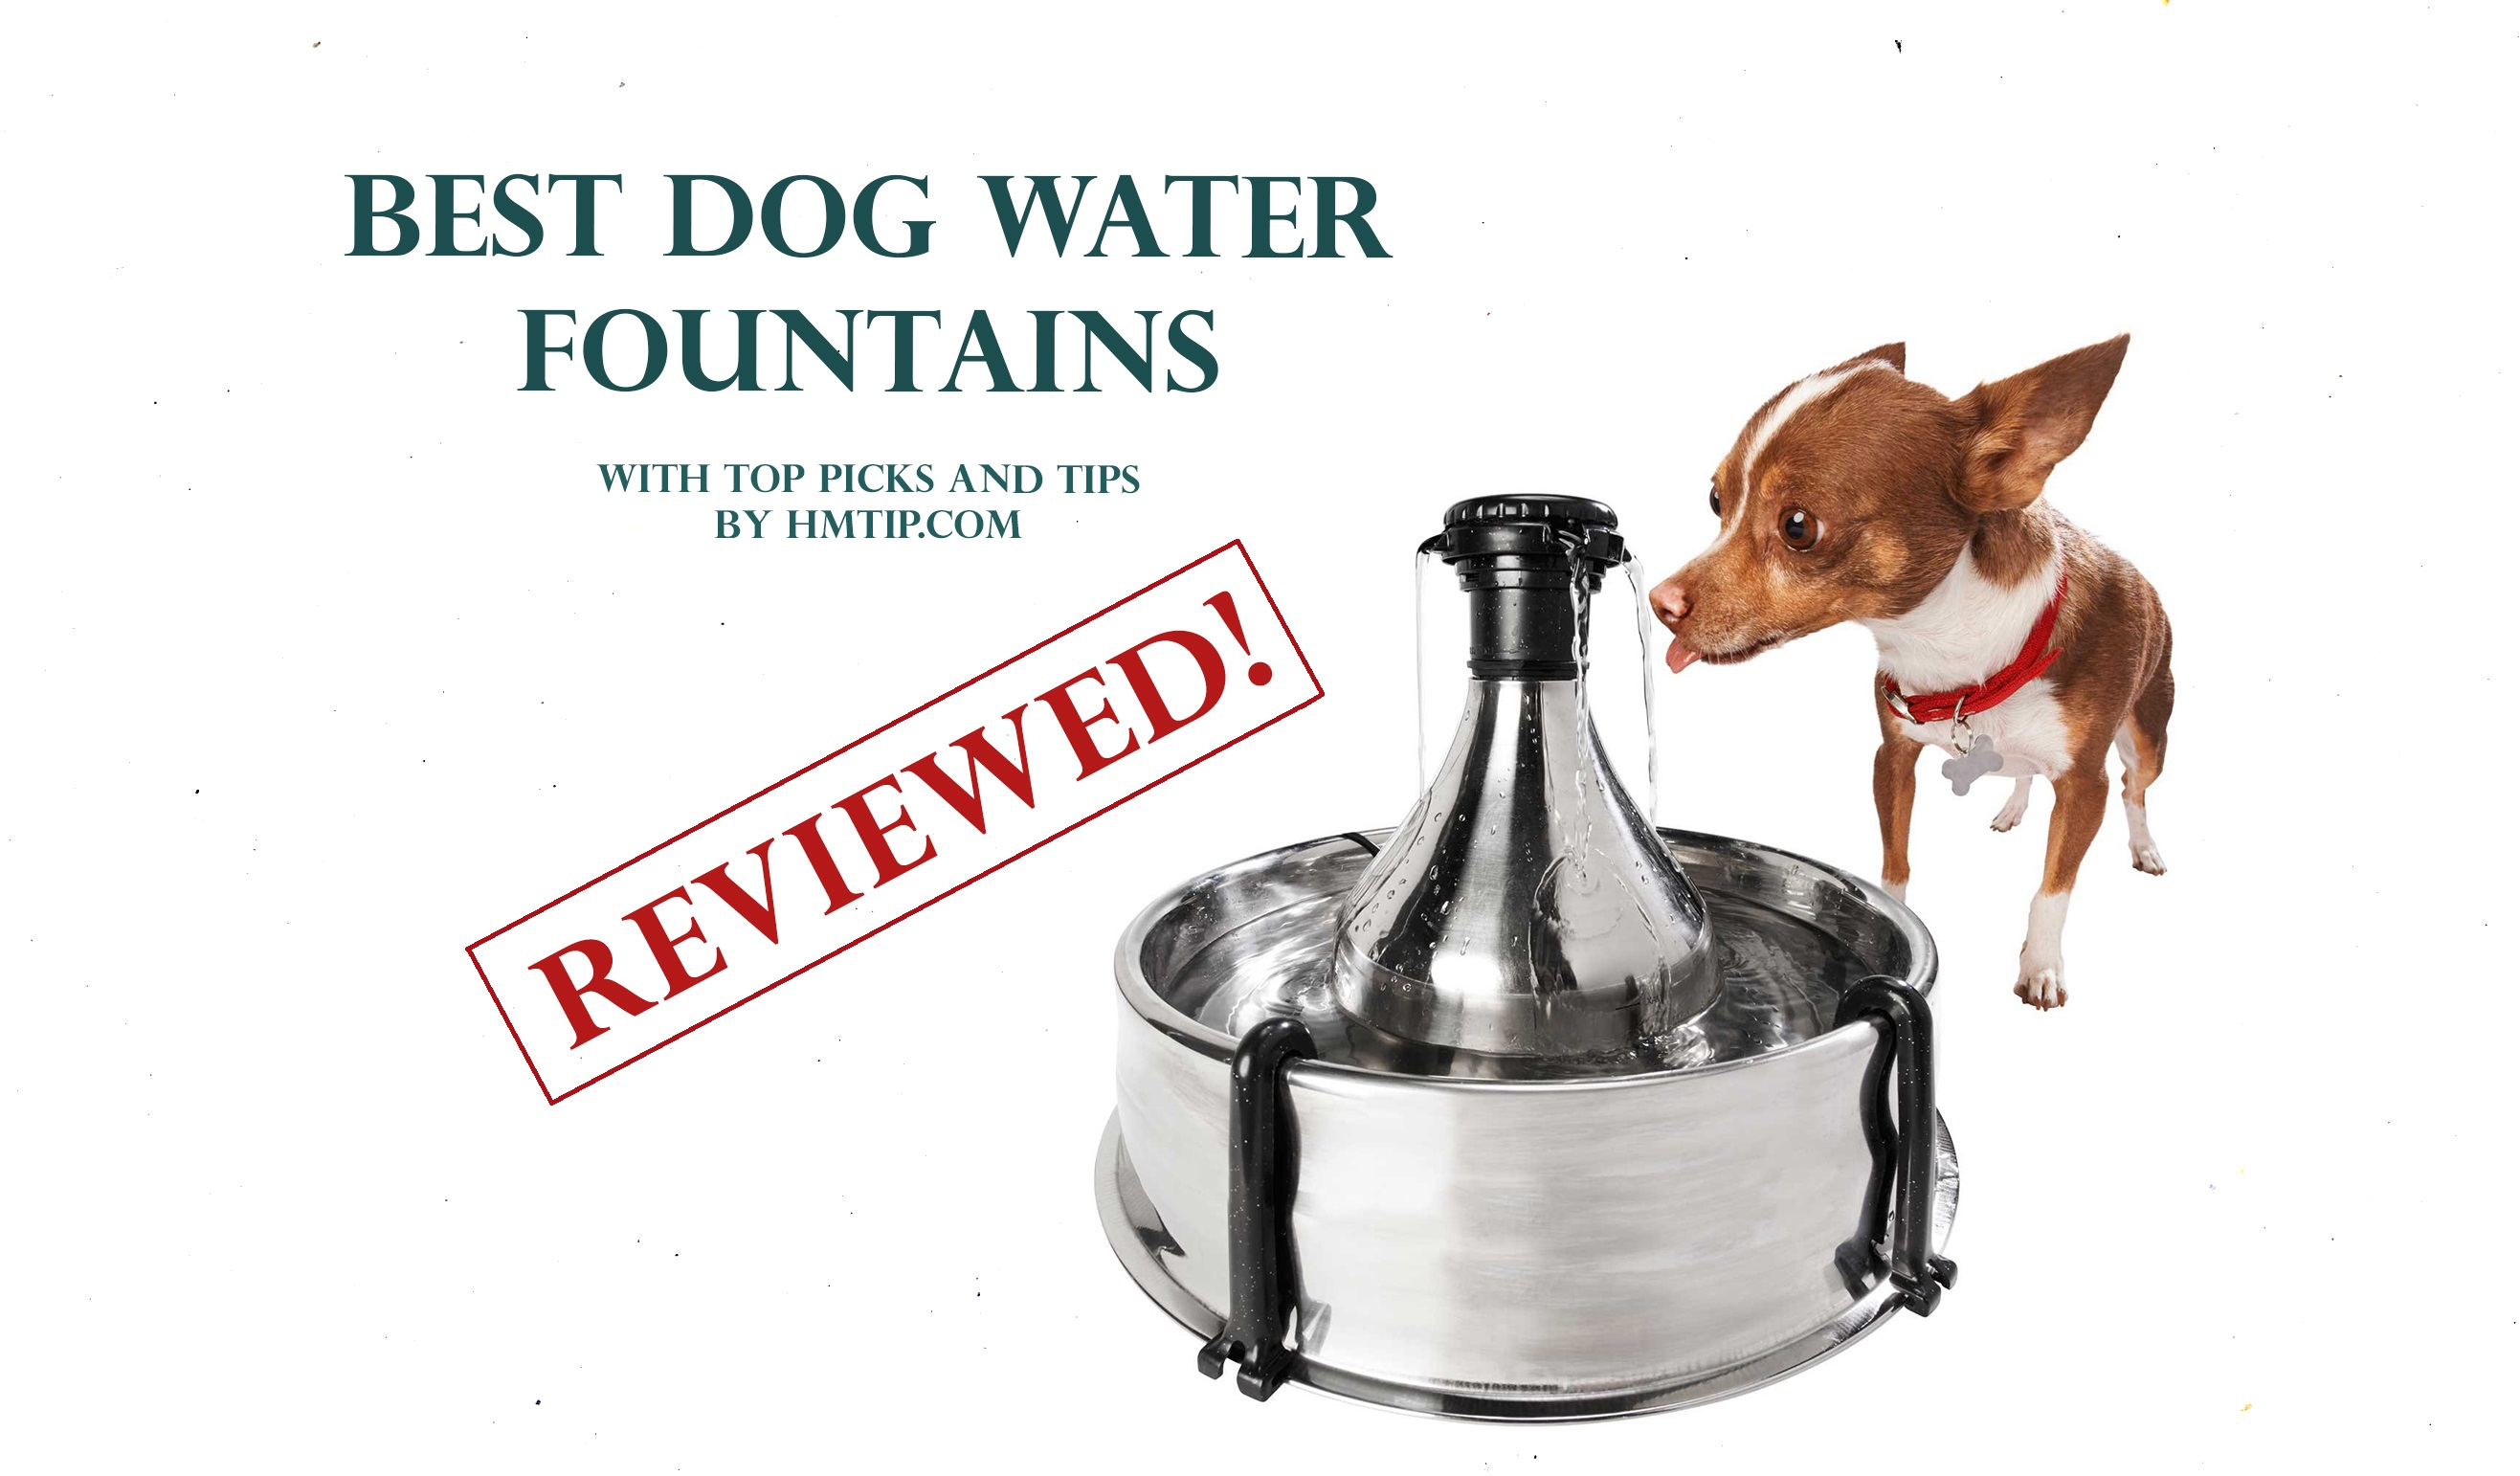 Top dog water fountains